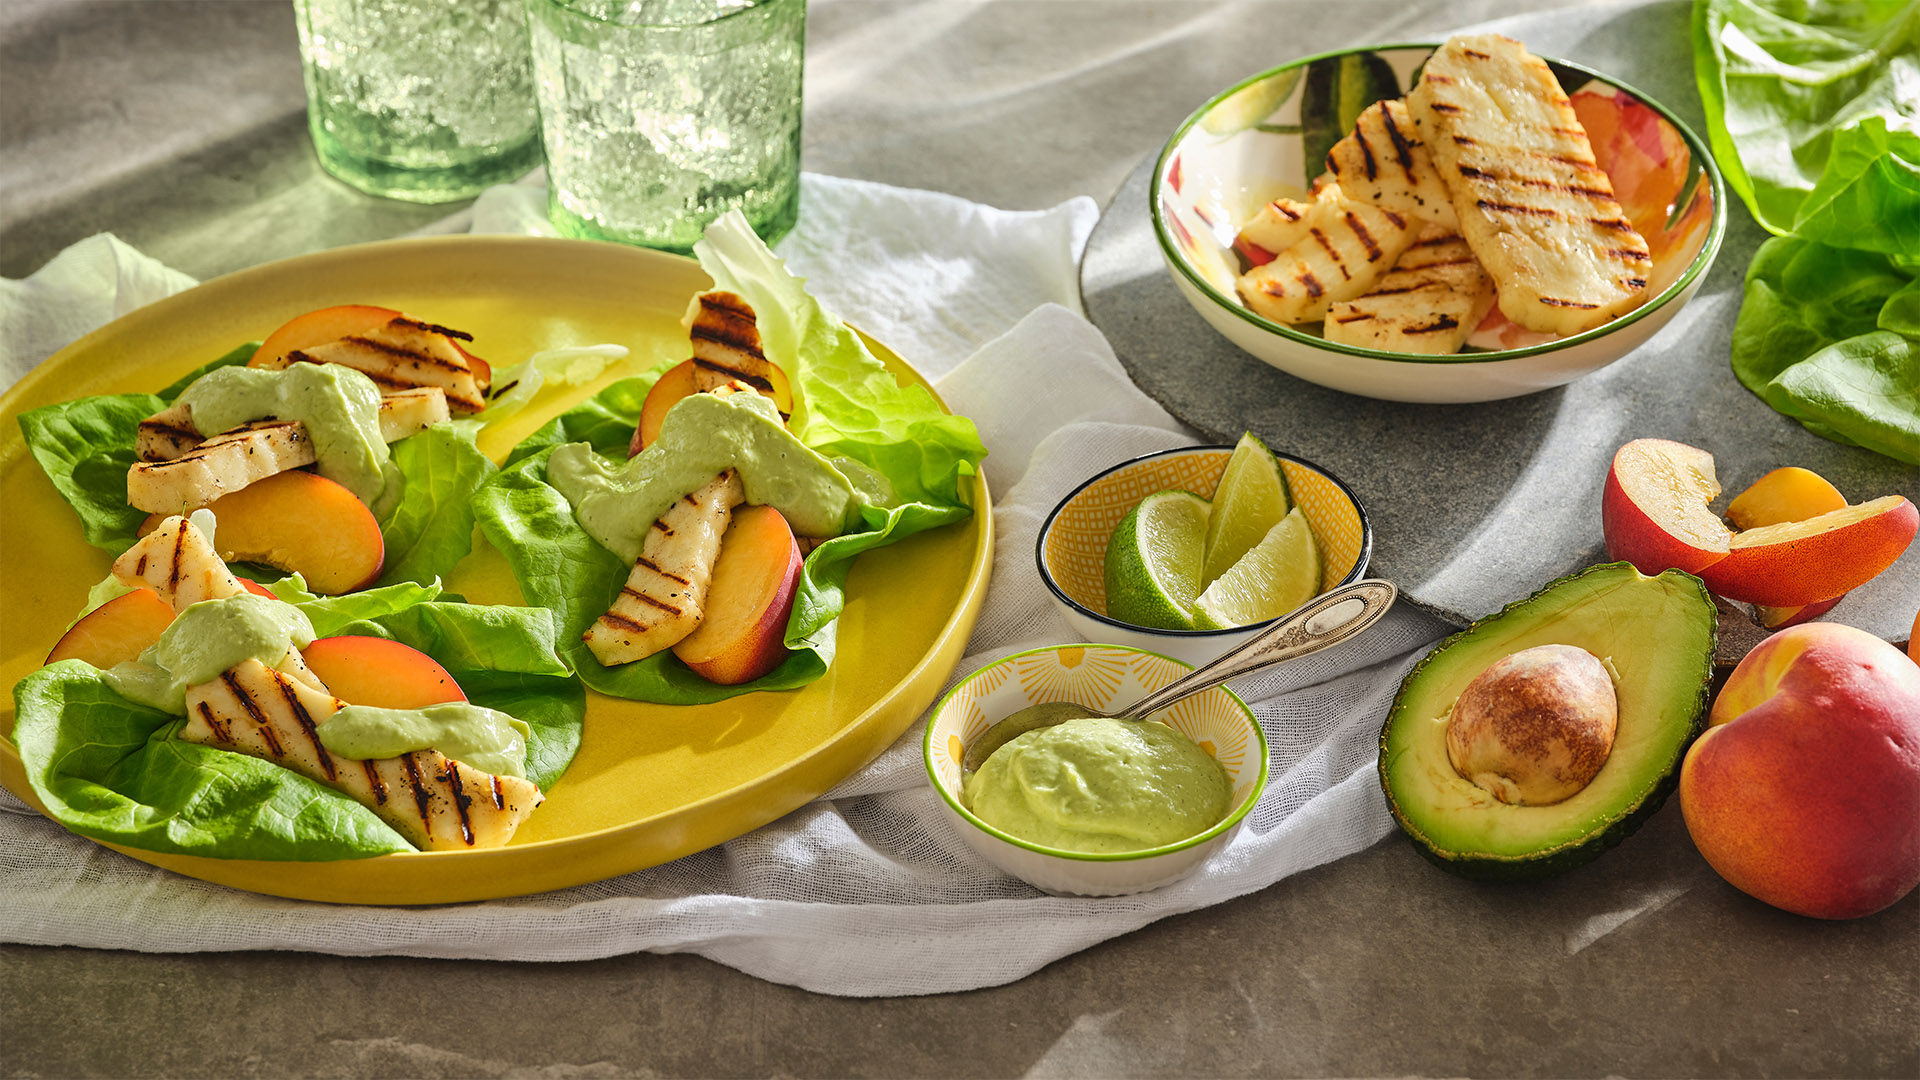 Green goddess lettuce leaf tacos on a yellow round plate next to an avocado half and a peach.